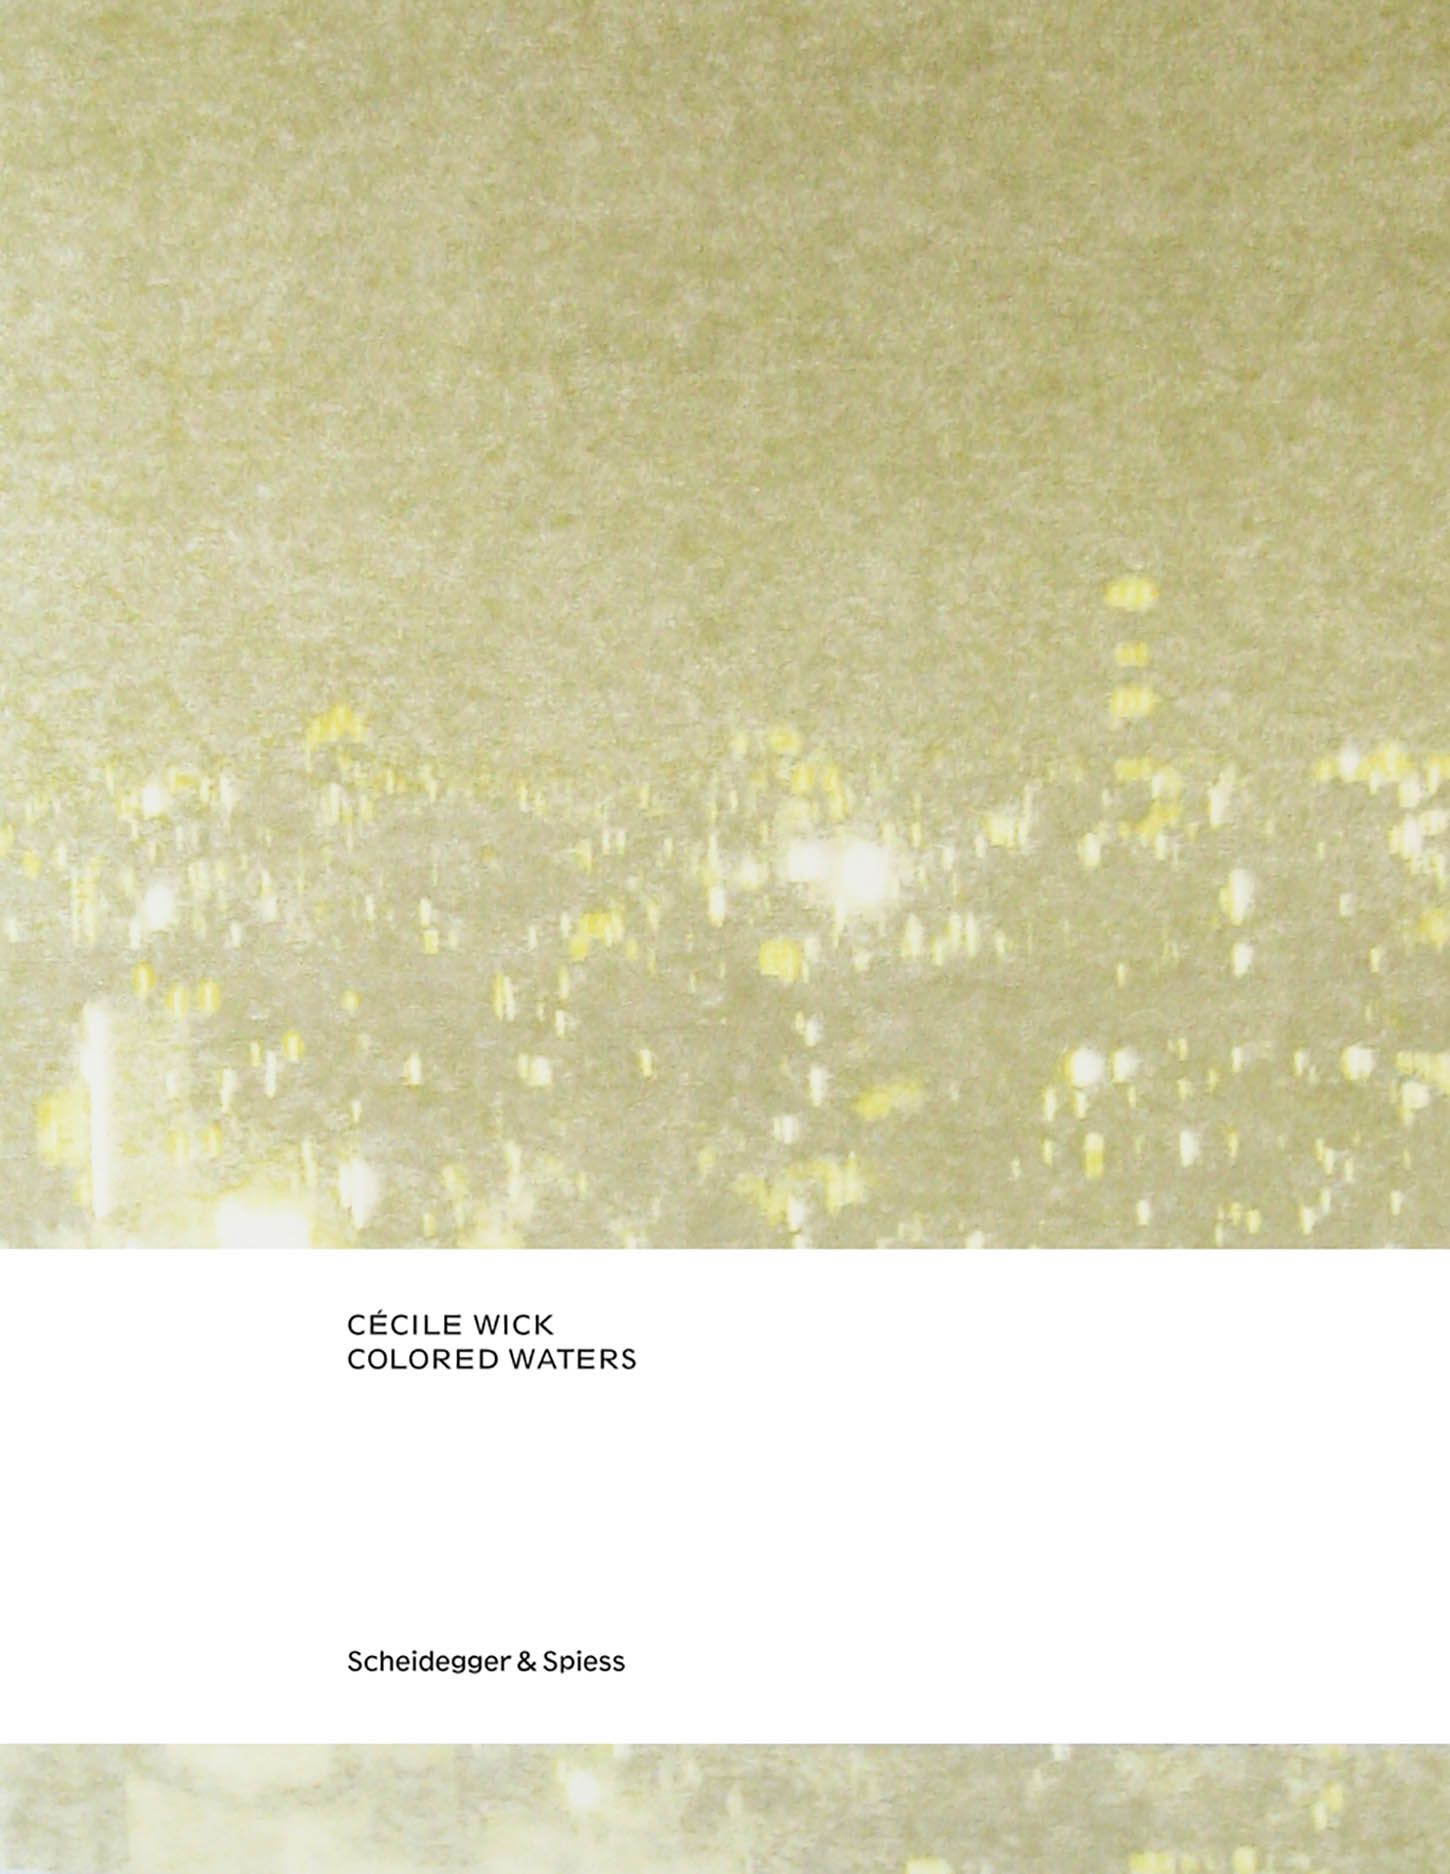 Cécile Wick. Colored Waters: Drawings and Photographs